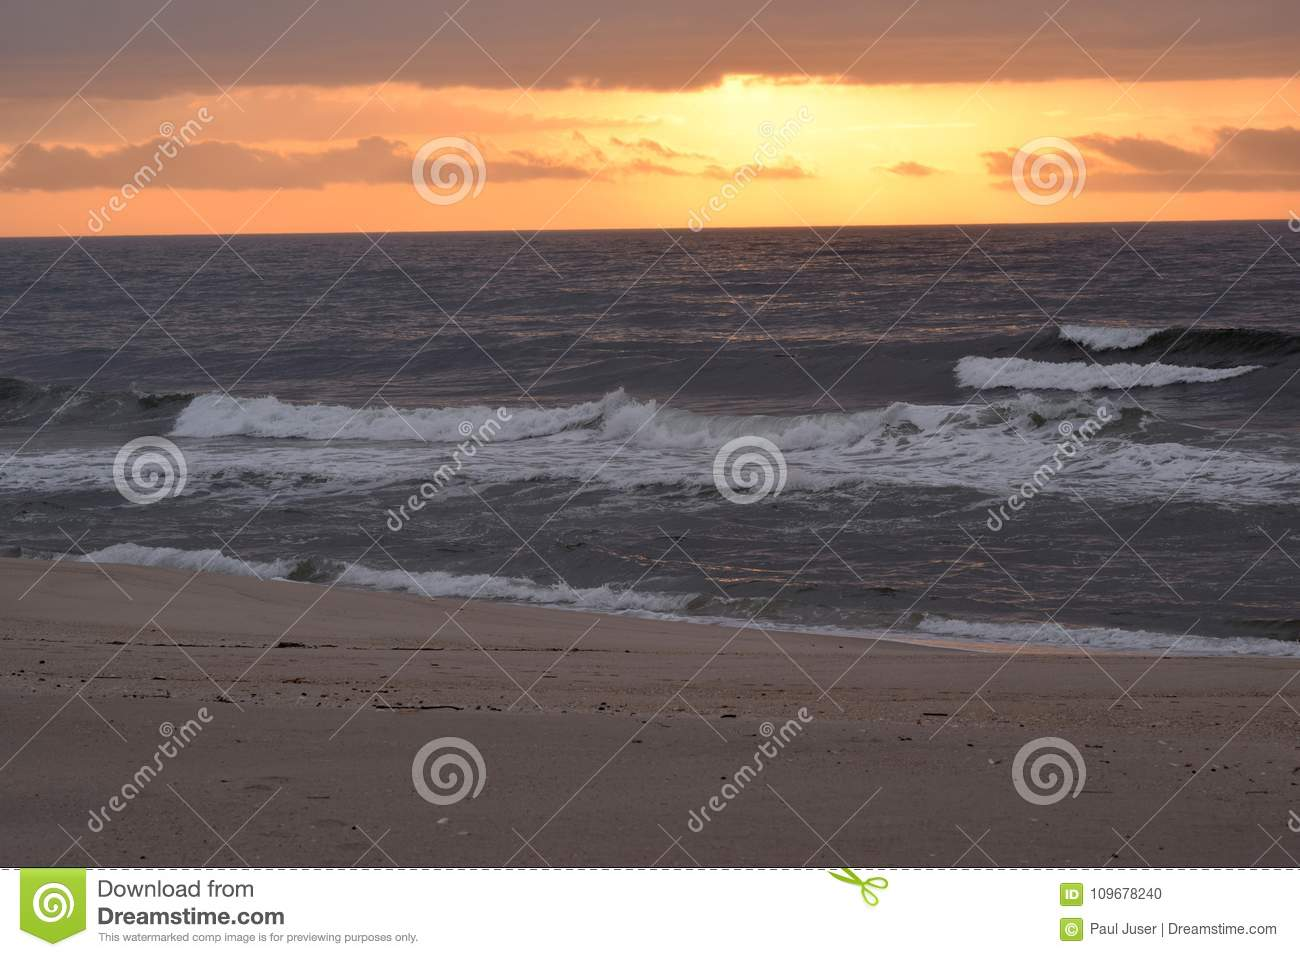 Waves Crashing On A Beach At Dawn Stock Photo - Image of sand, calm